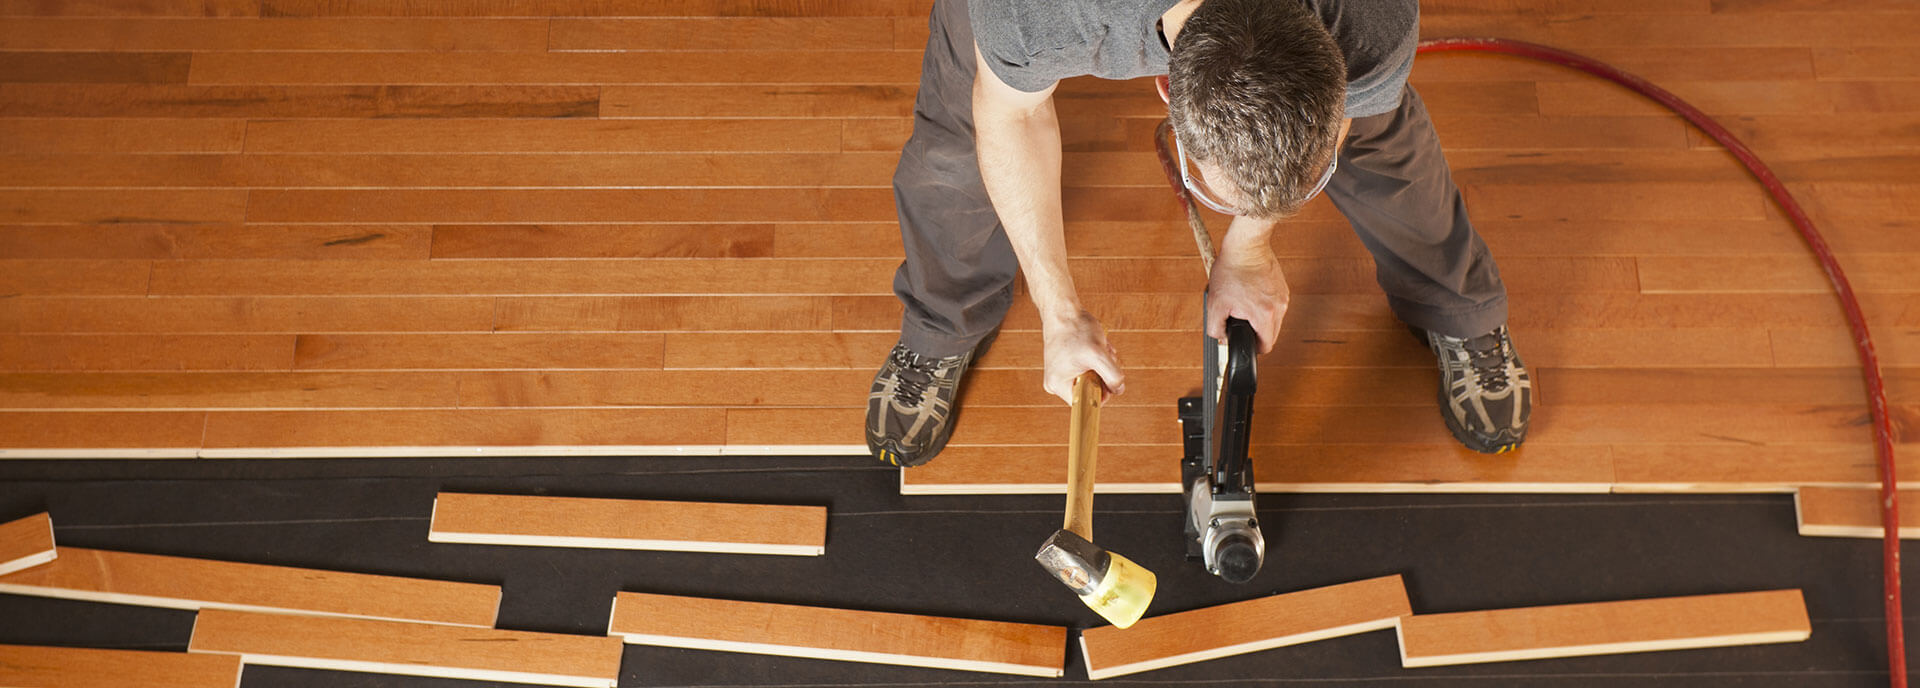 Hardwood flooring contractor working in Fond du Lac, WI